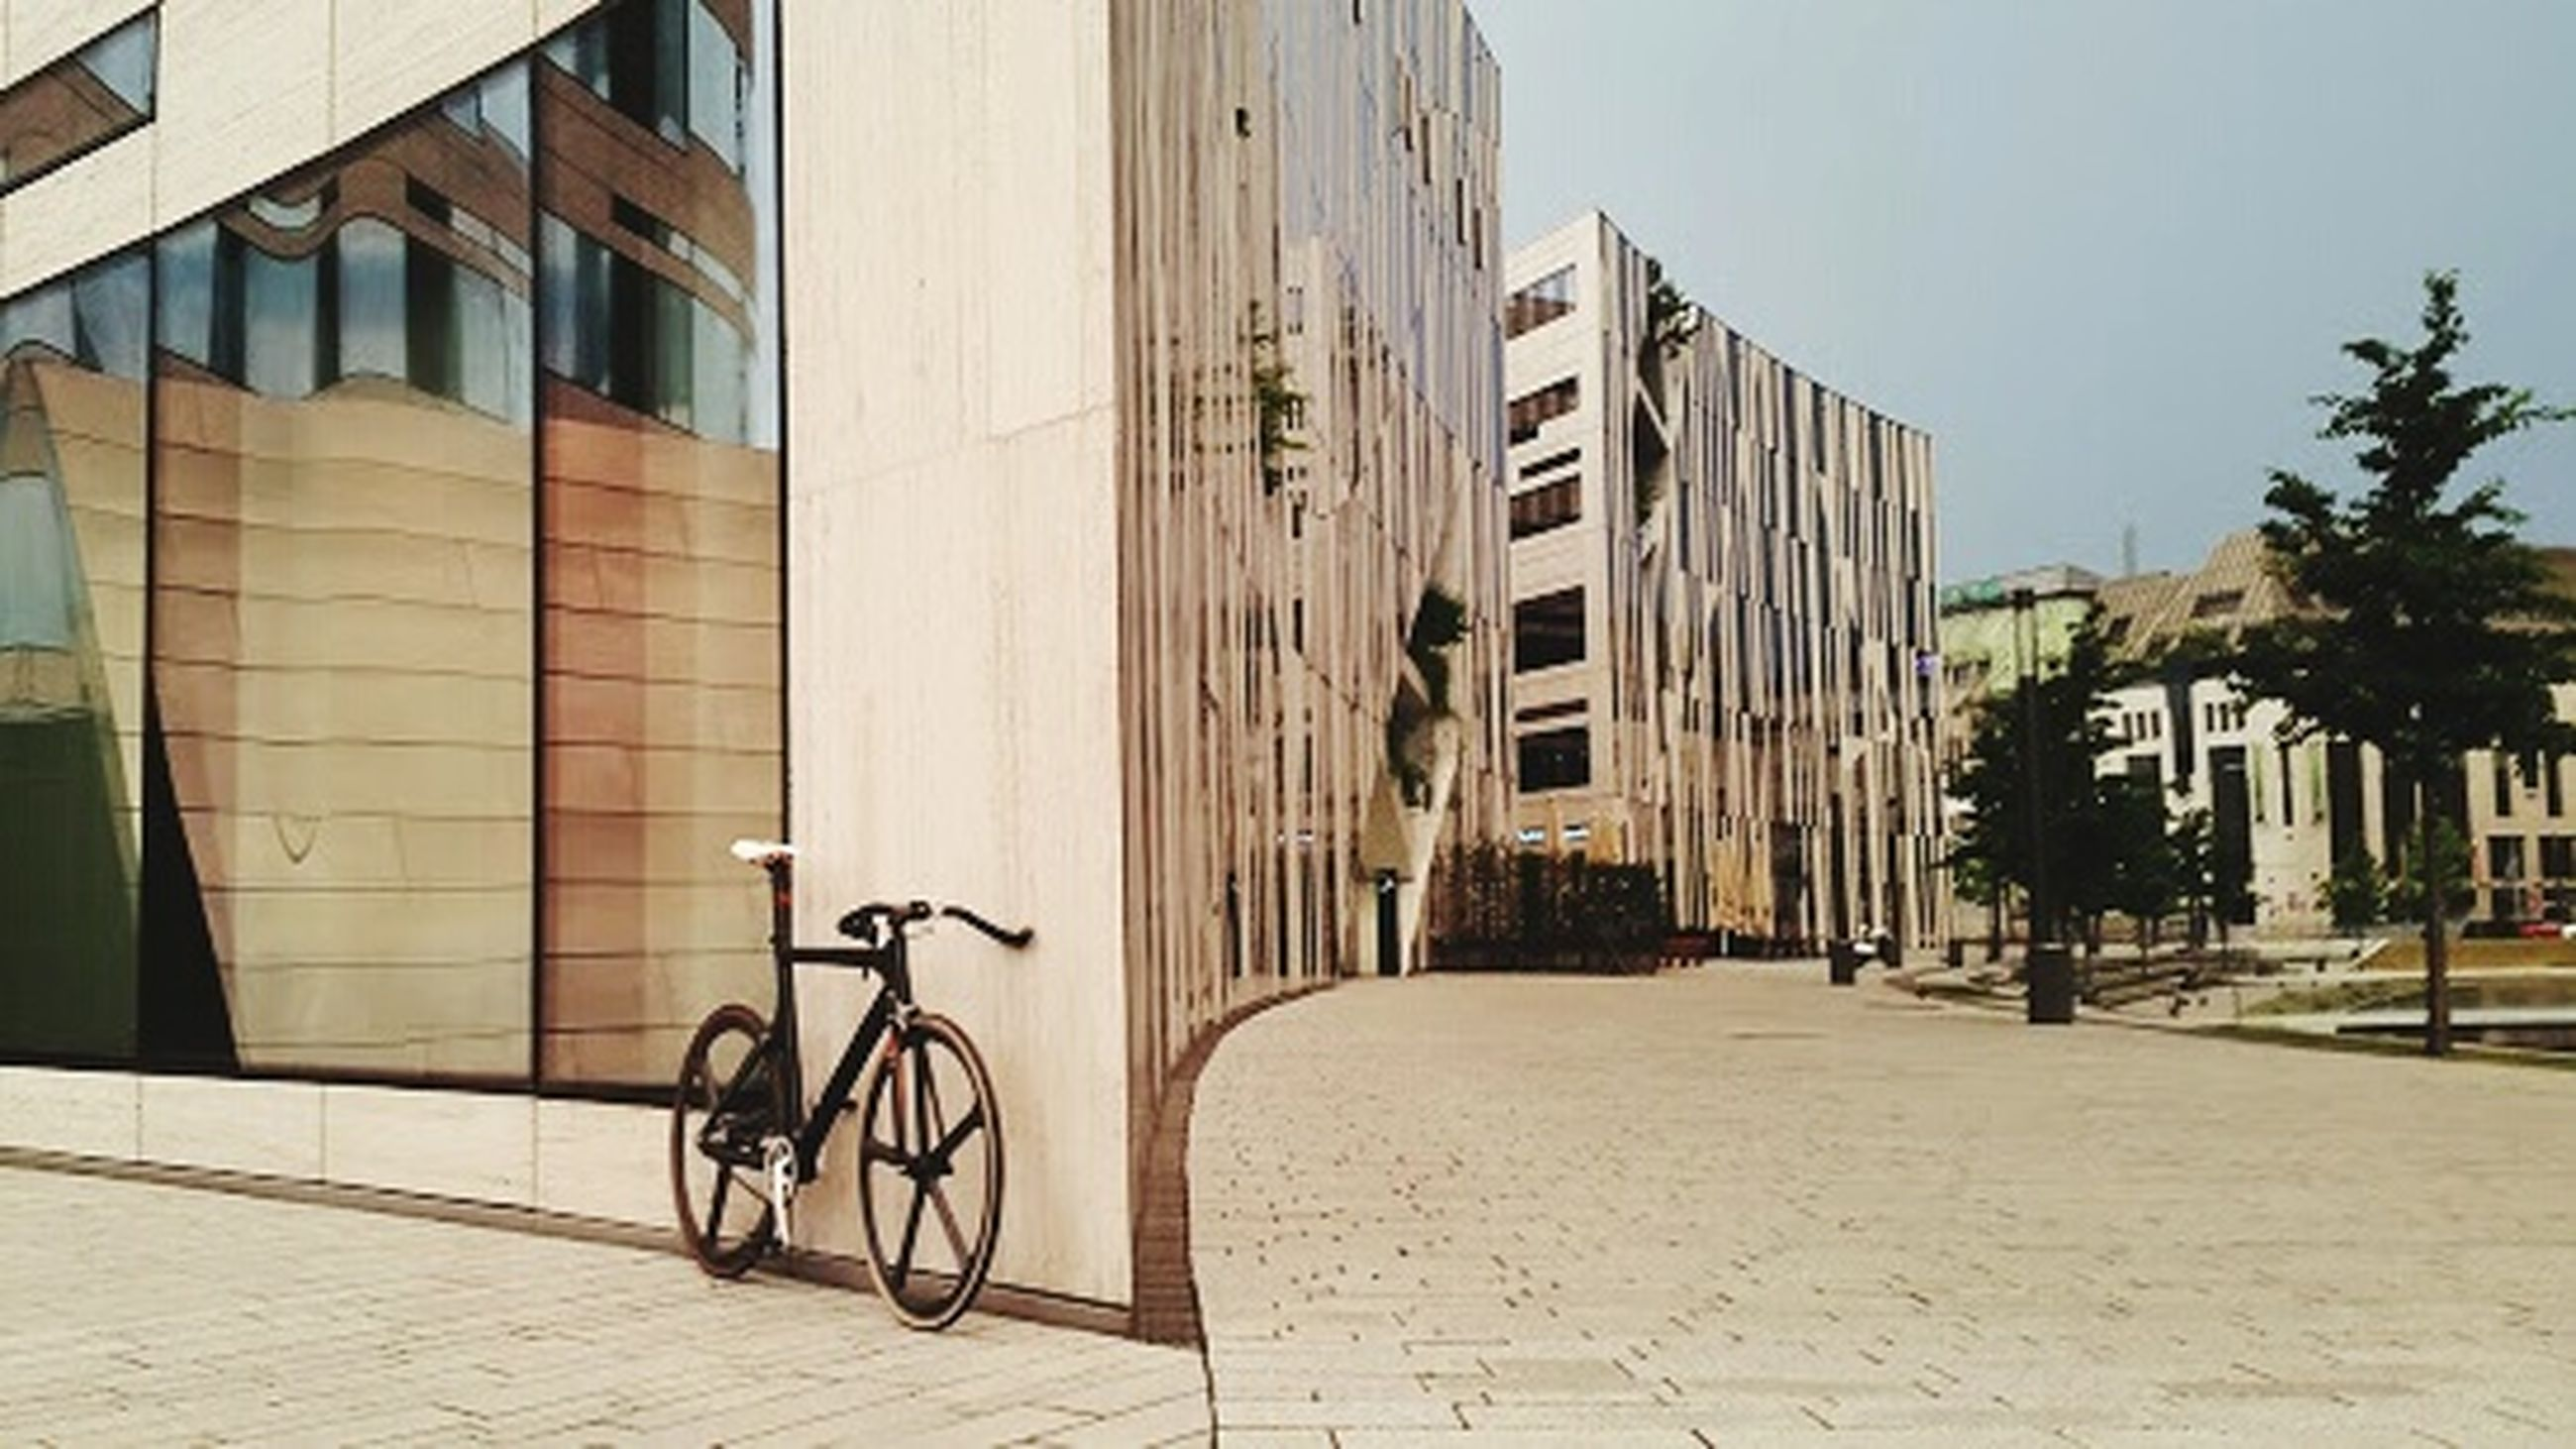 architecture, building exterior, built structure, city, bicycle, building, street, window, residential building, transportation, residential structure, sunlight, sidewalk, day, shadow, cobblestone, parking, modern, outdoors, wall - building feature